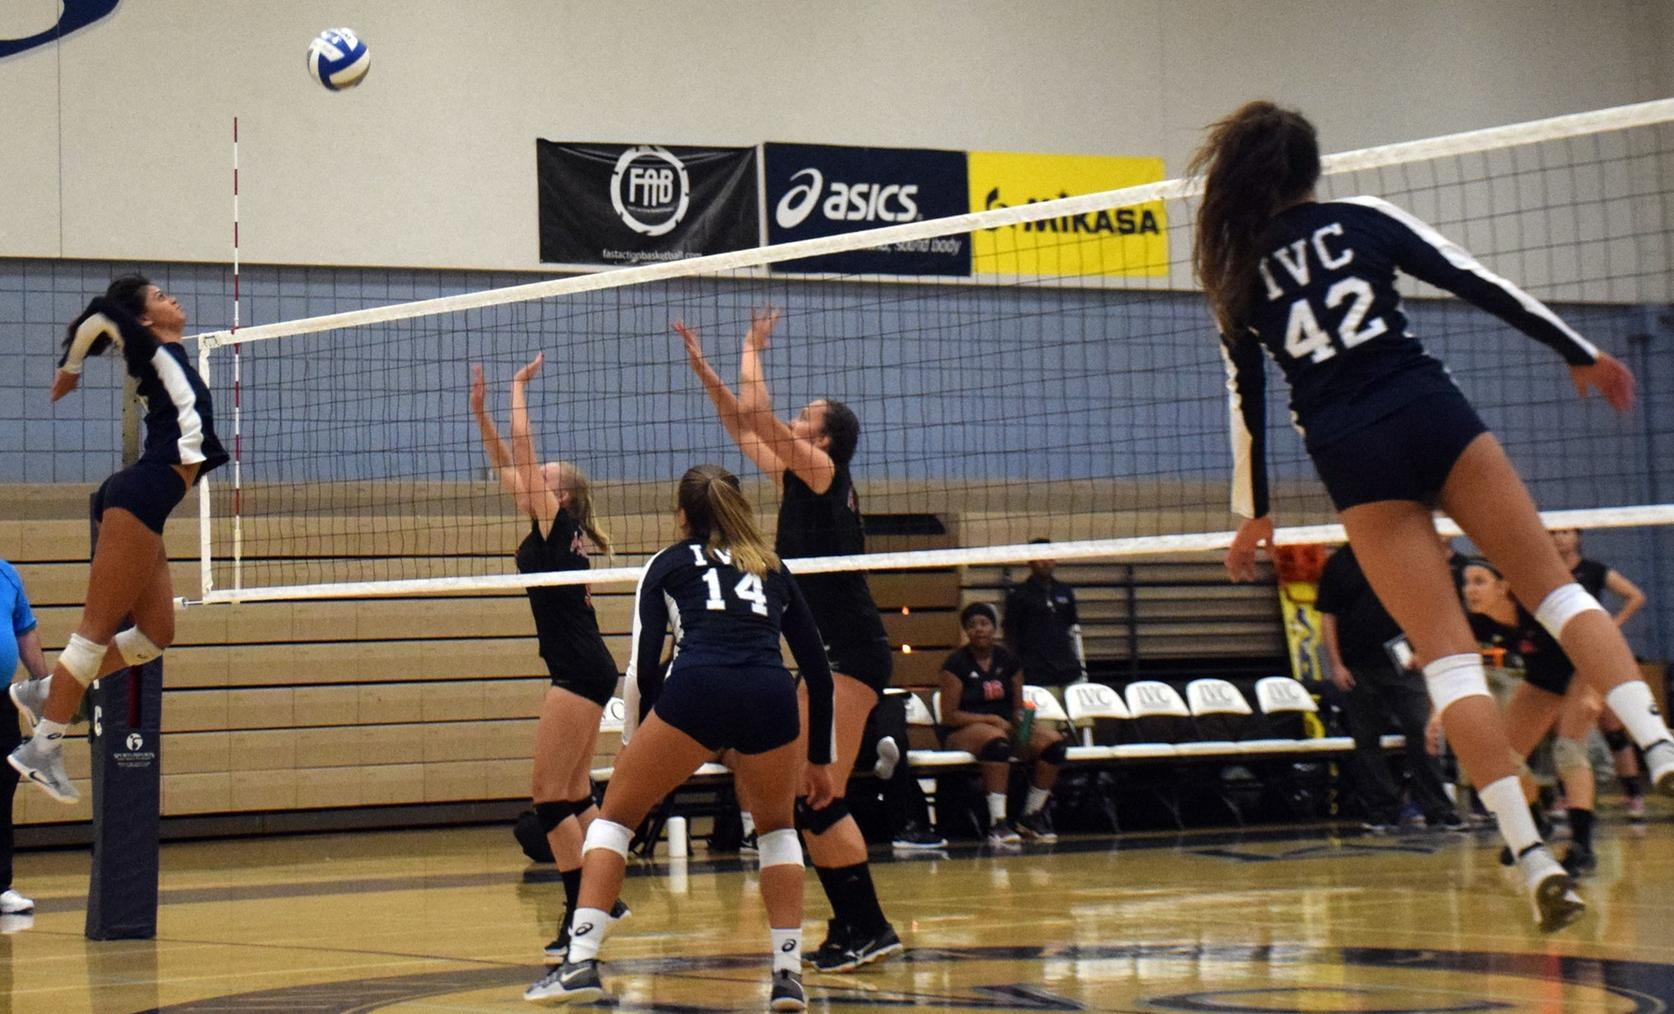 Women's volleyball team wins sixth straight, OEC play up next